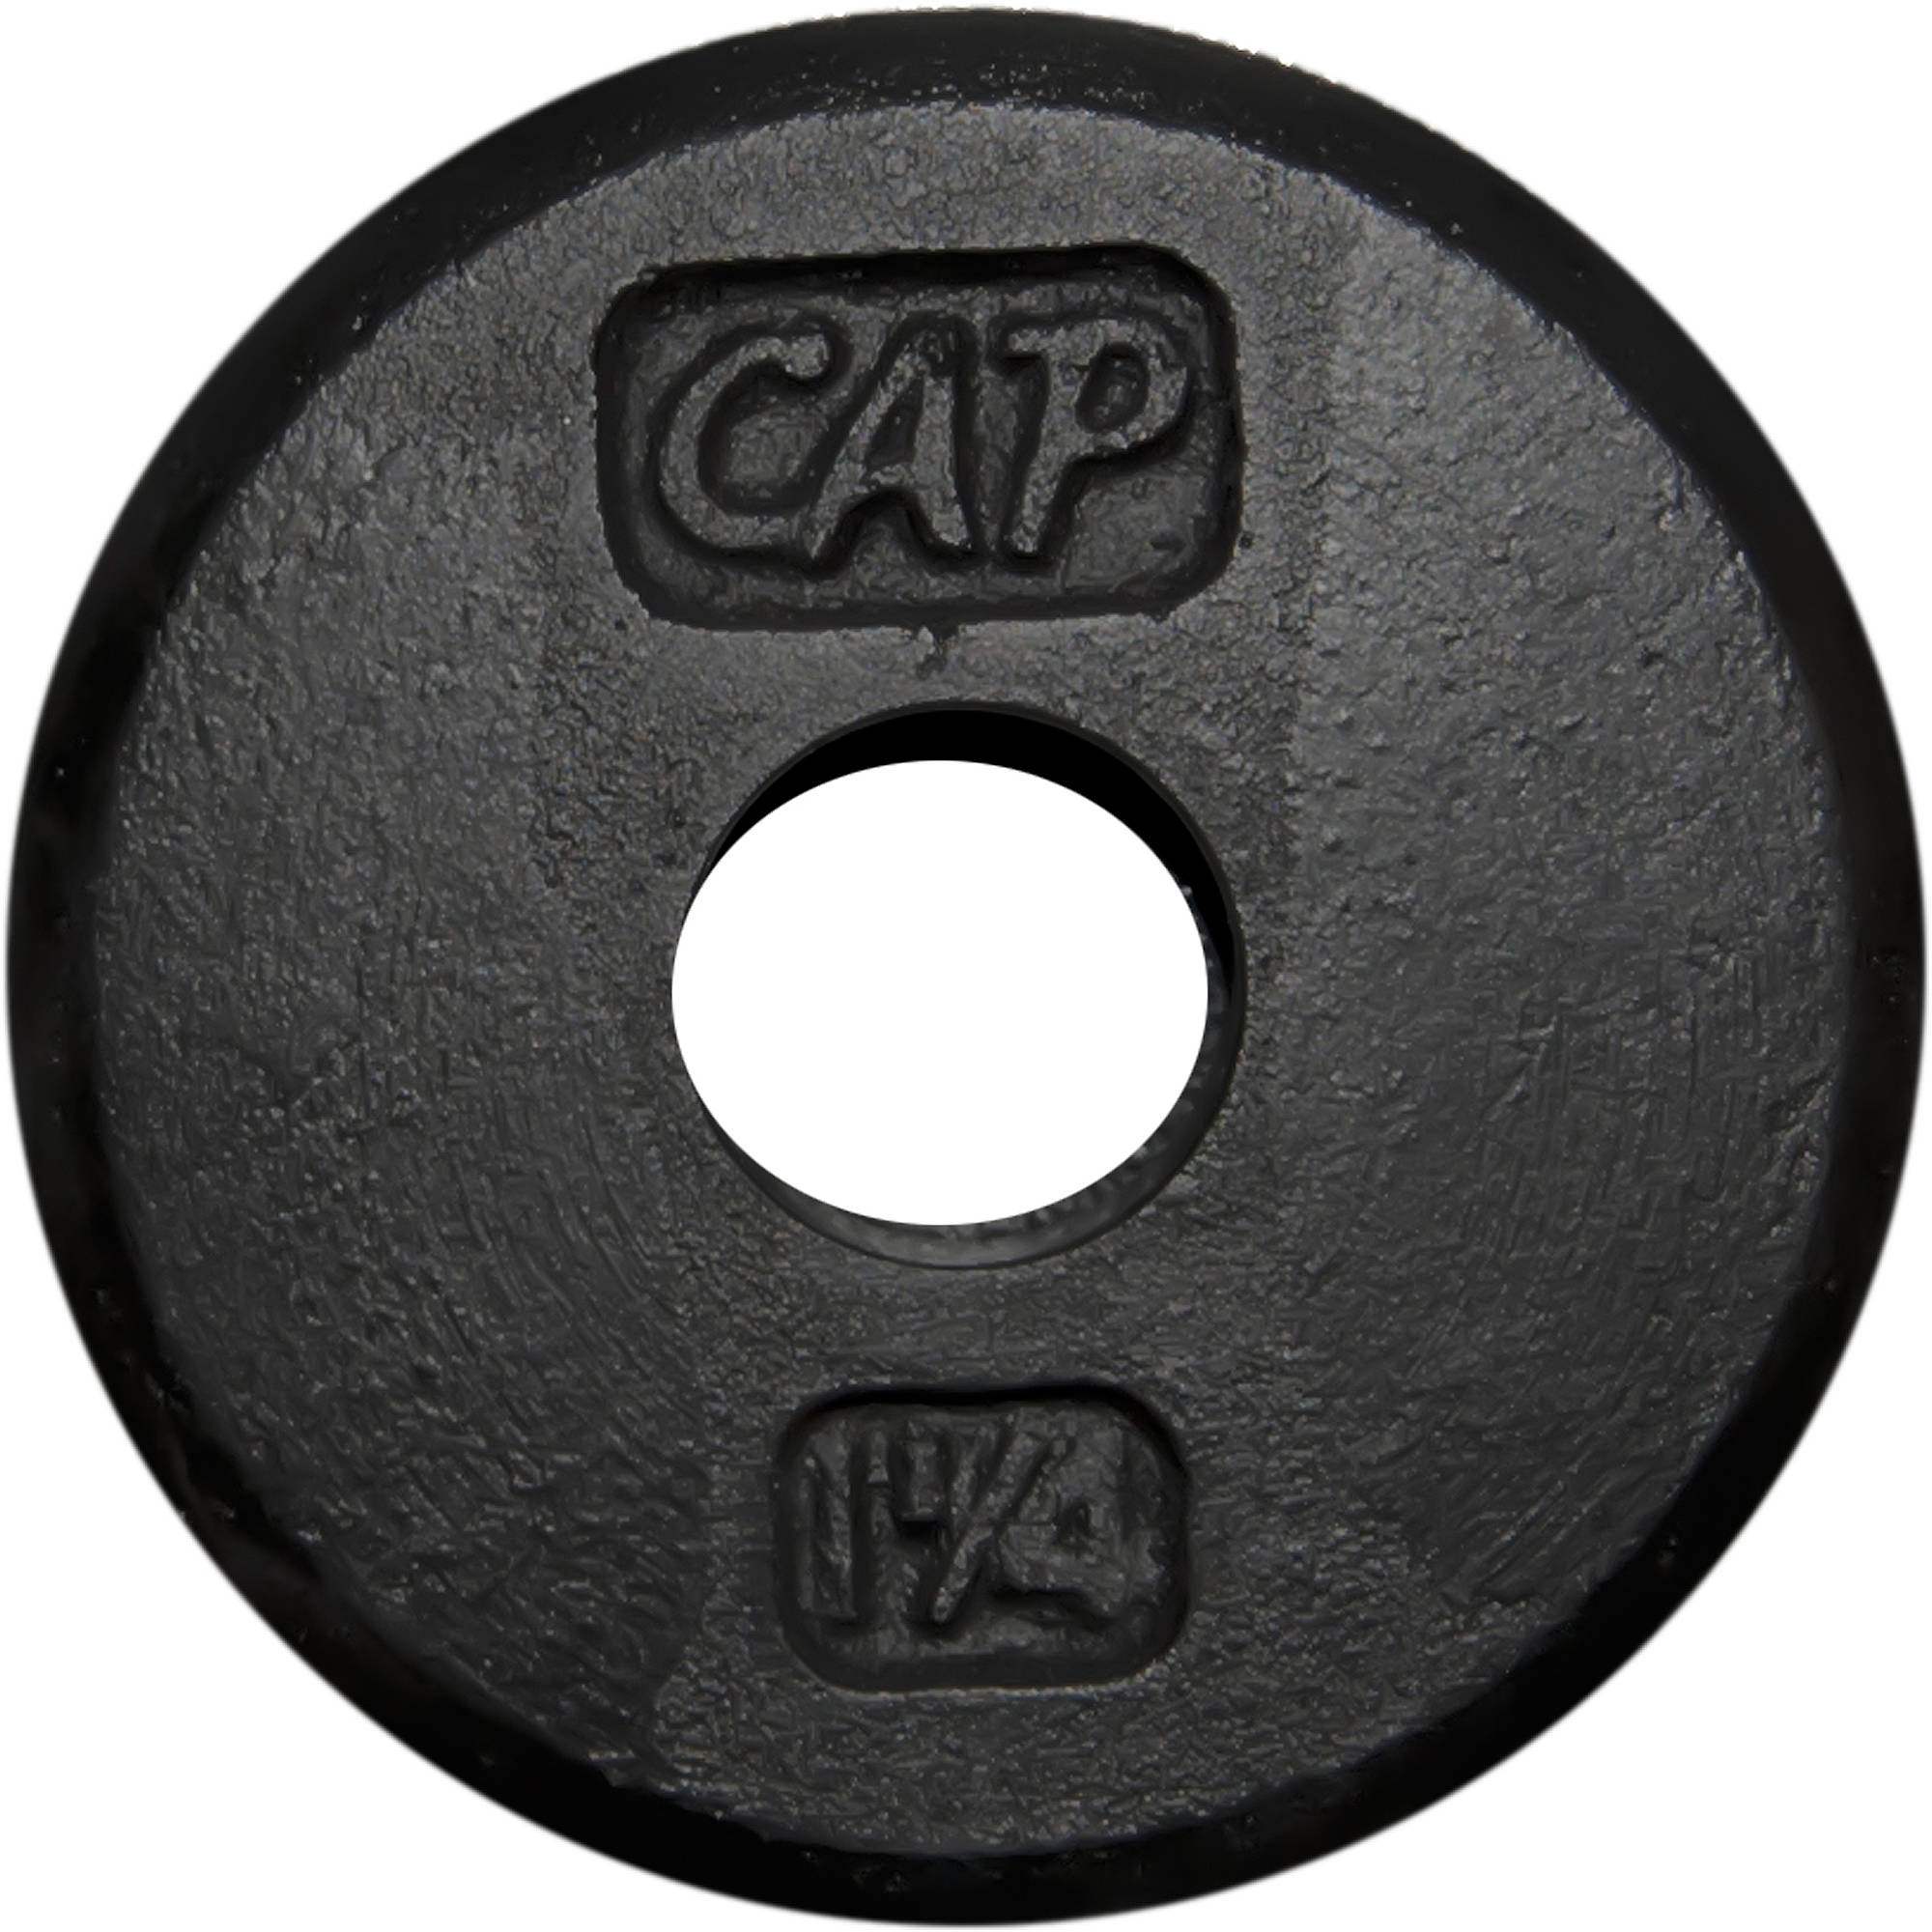 CAP Barbell - Standard Cast Iron Weight Plate, 1.25 lbs, Black